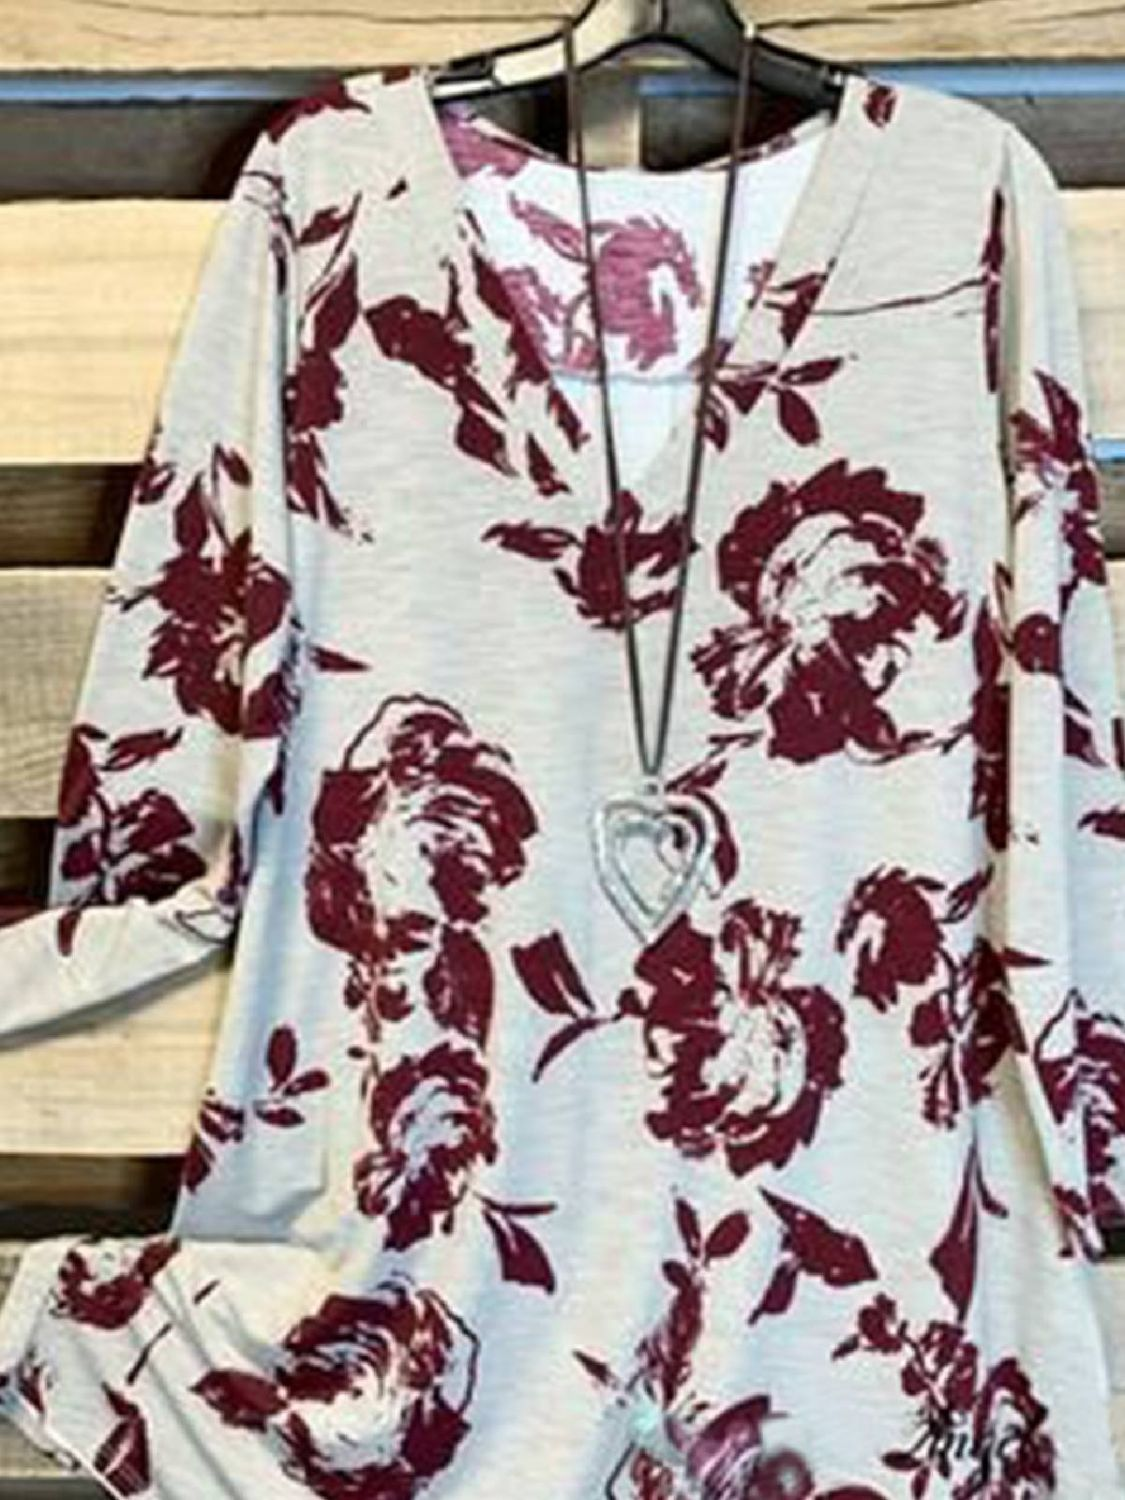 Long Sleeve V Neck Floral-Print Shirts & Tops | Tops | Mondadays Floral 1 Multicolor Women Tops Polyester Casual V Neck Long Sleeve Floral-Print Daily Tops | mondadays